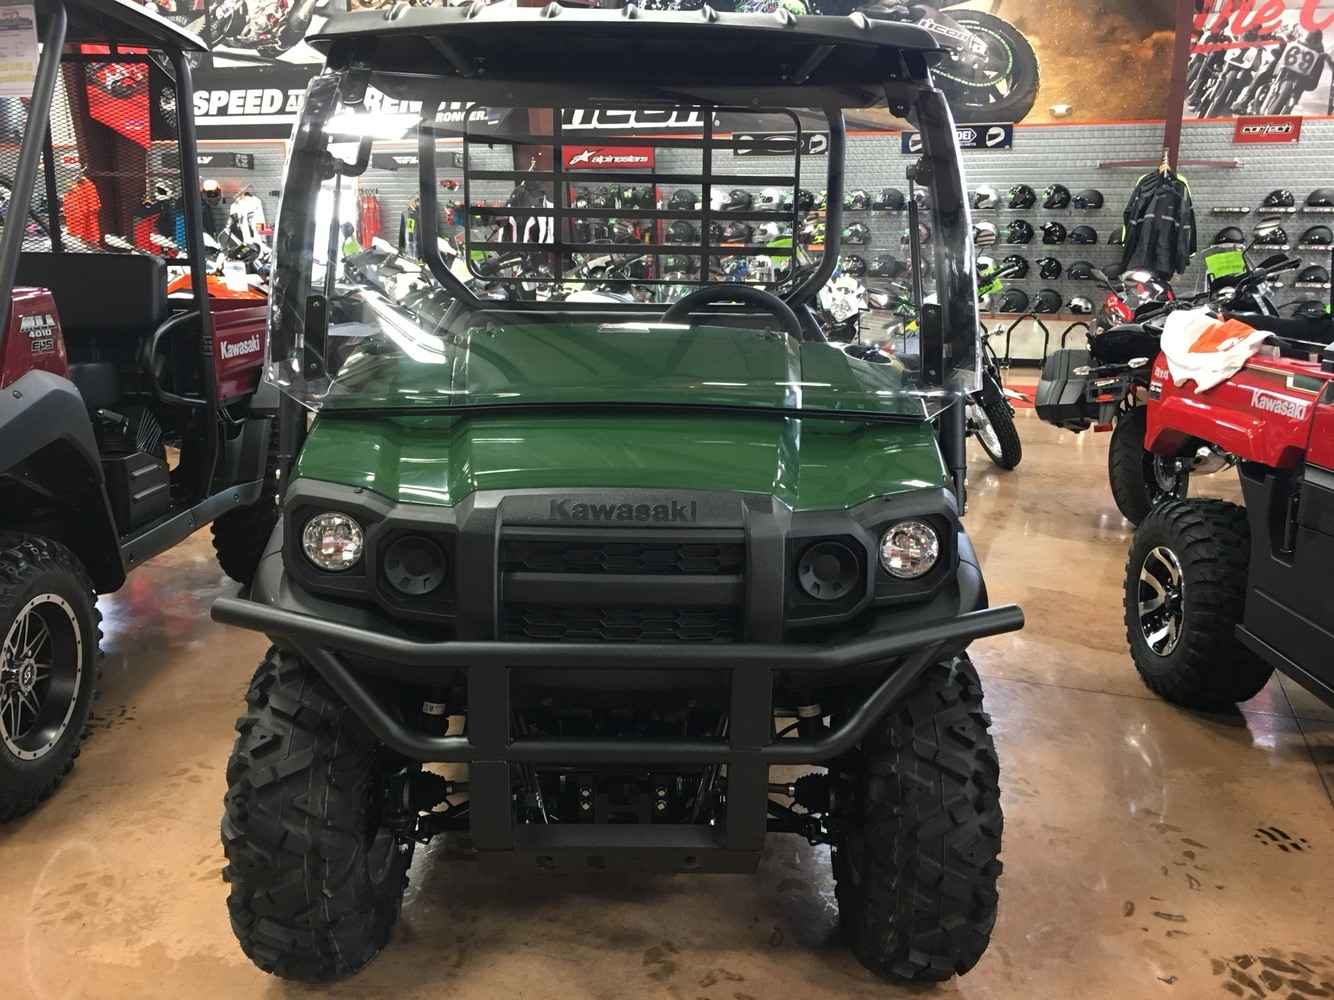 2019 Kawasaki Mule SX 4X4 in Evansville, Indiana - Photo 5